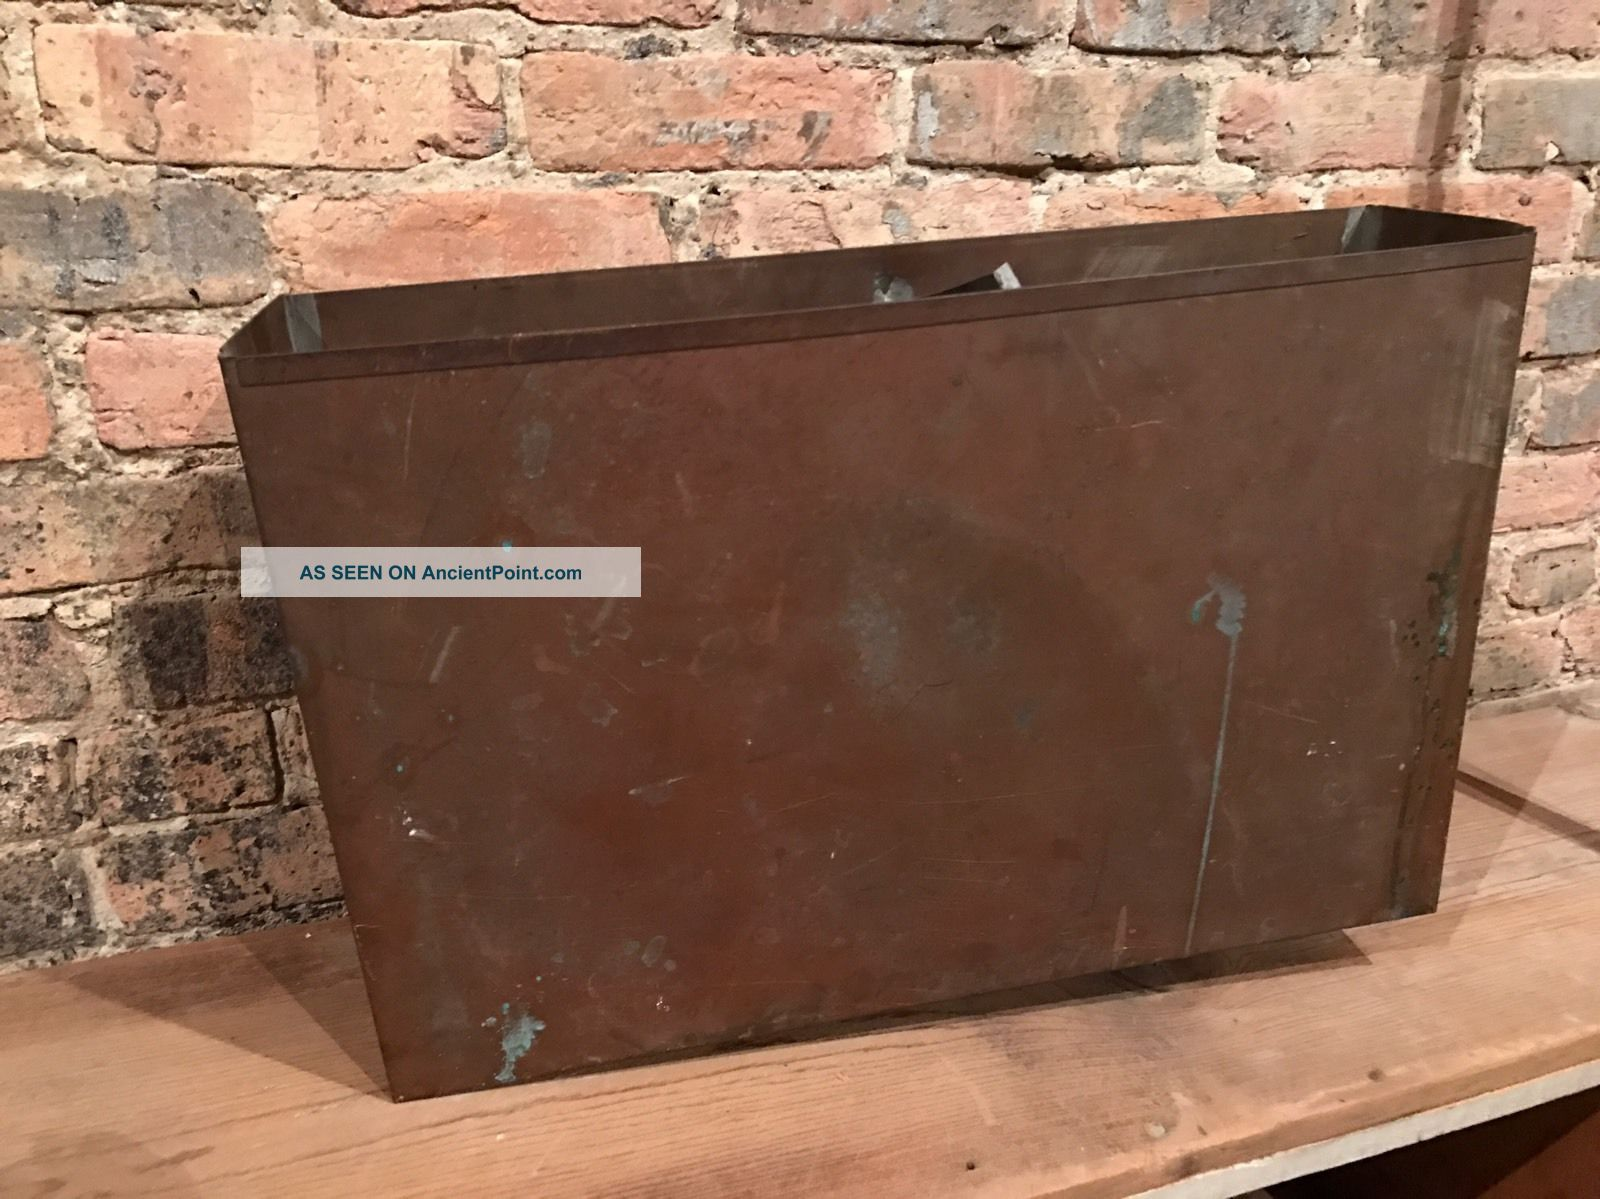 Antique Salvaged Copper Toilet Tank Insert Plumbing Restoration Wall Hung Plumbing photo